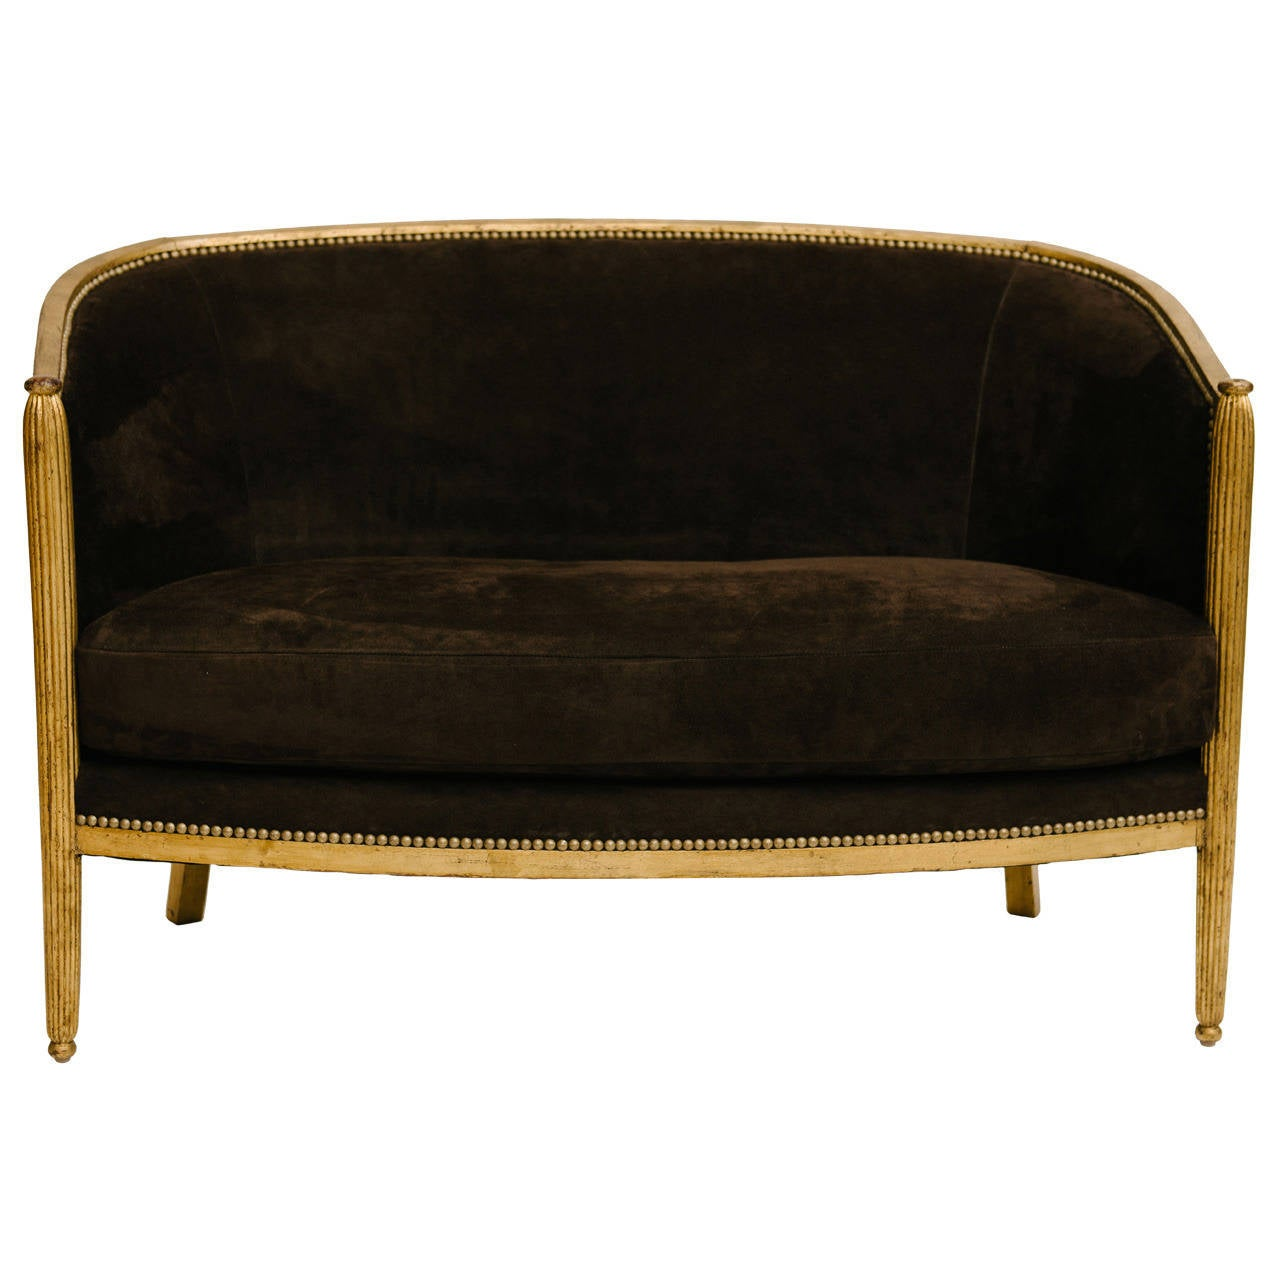 gilt art deco canap at 1stdibs. Black Bedroom Furniture Sets. Home Design Ideas